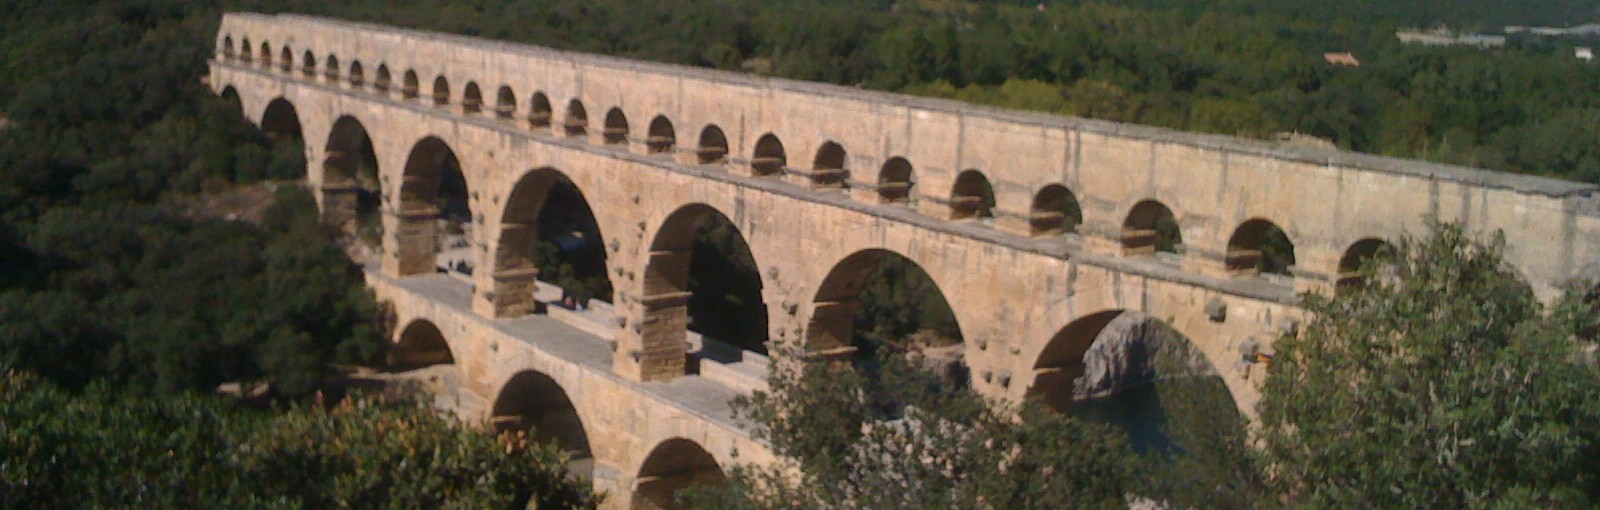 Tours One day in Provence more options - Provence - Regional tours